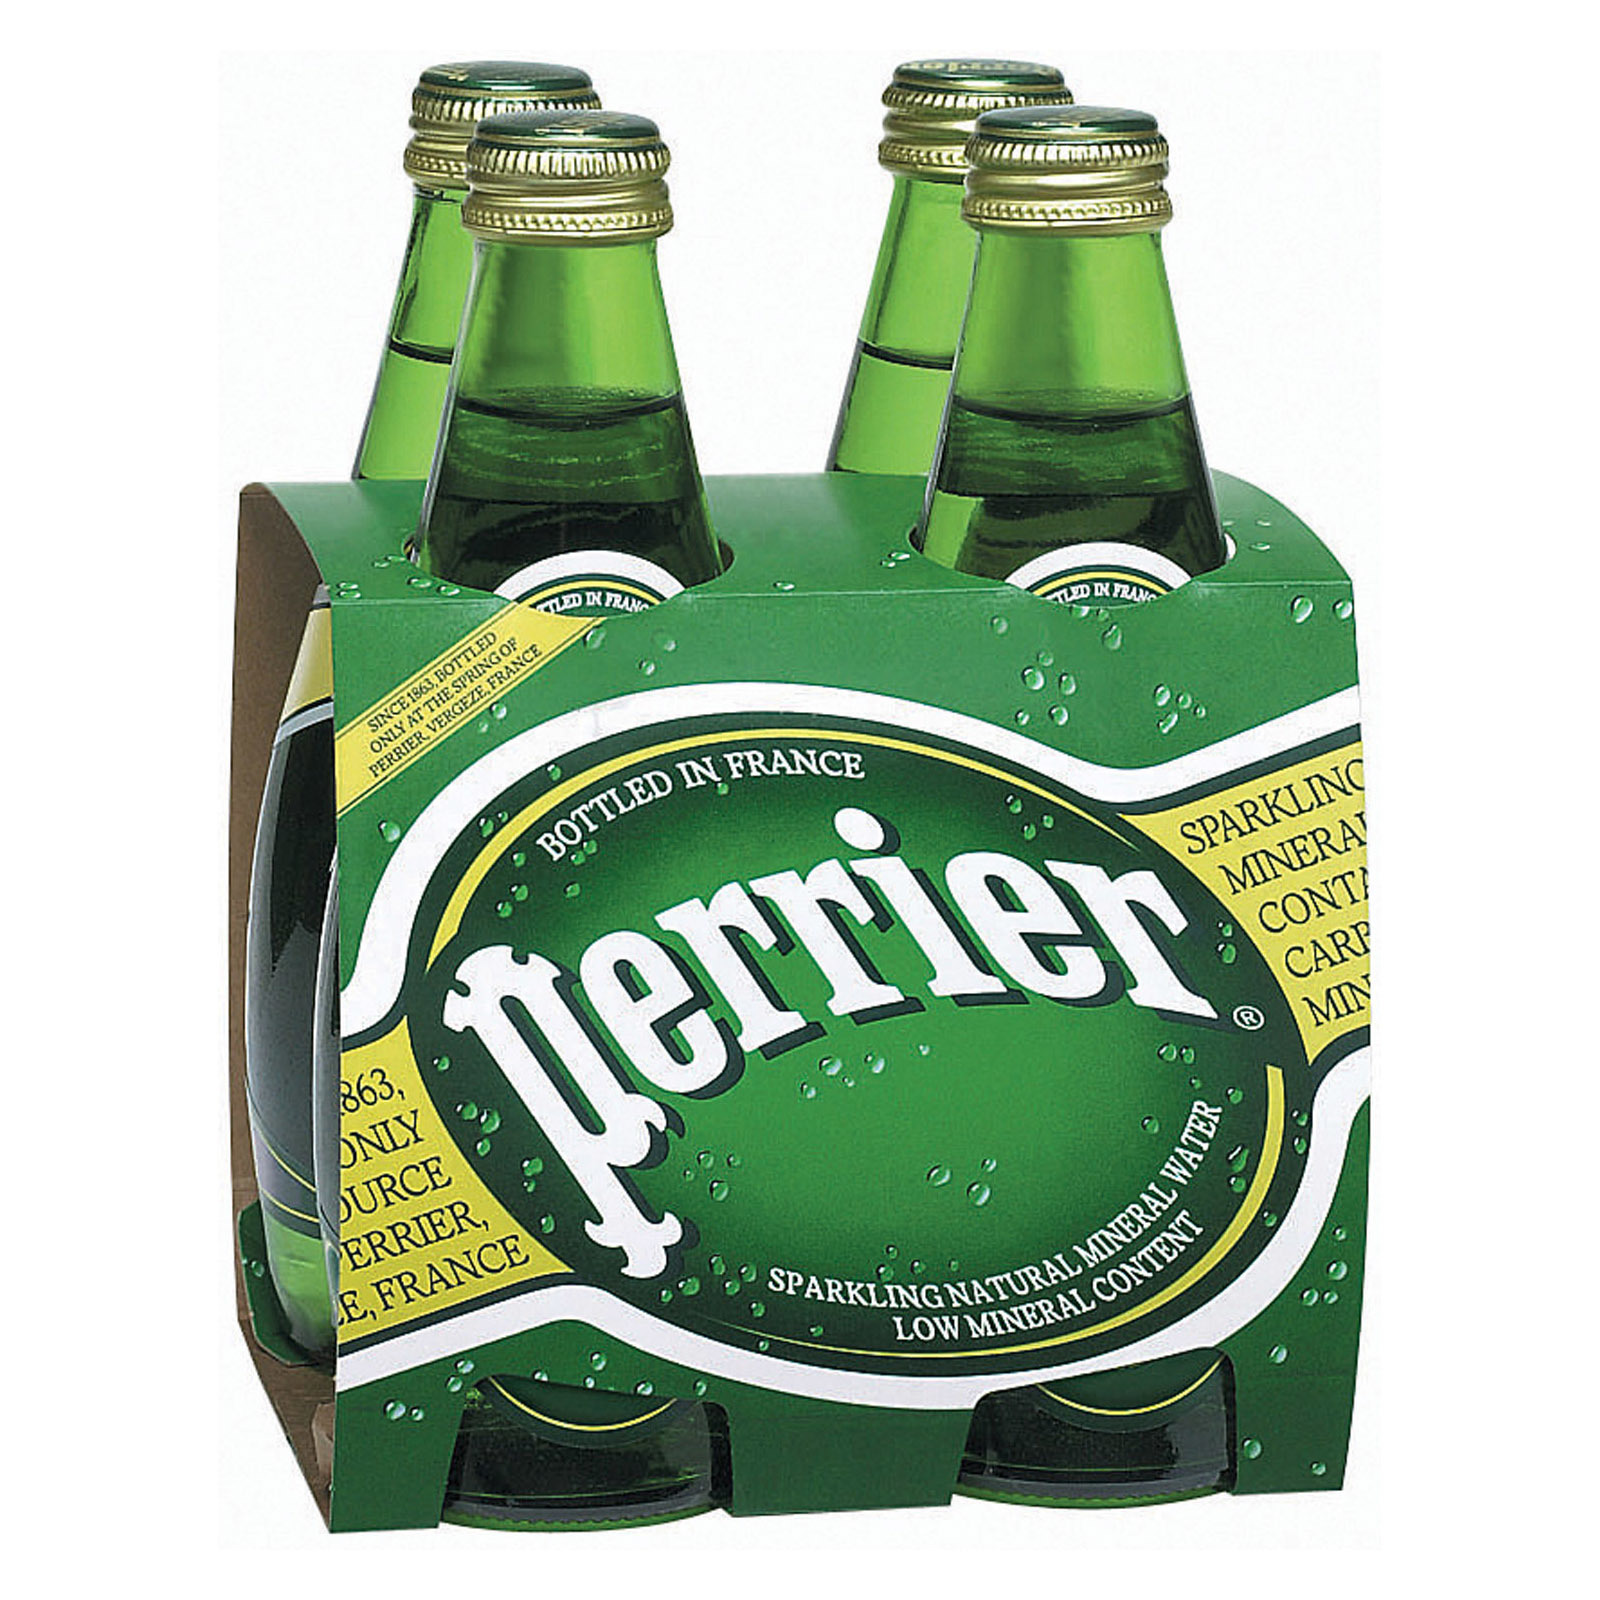 Perrier Sparkling Natural Mineral Water - Plain - Case of 6 - 11 Fl oz.